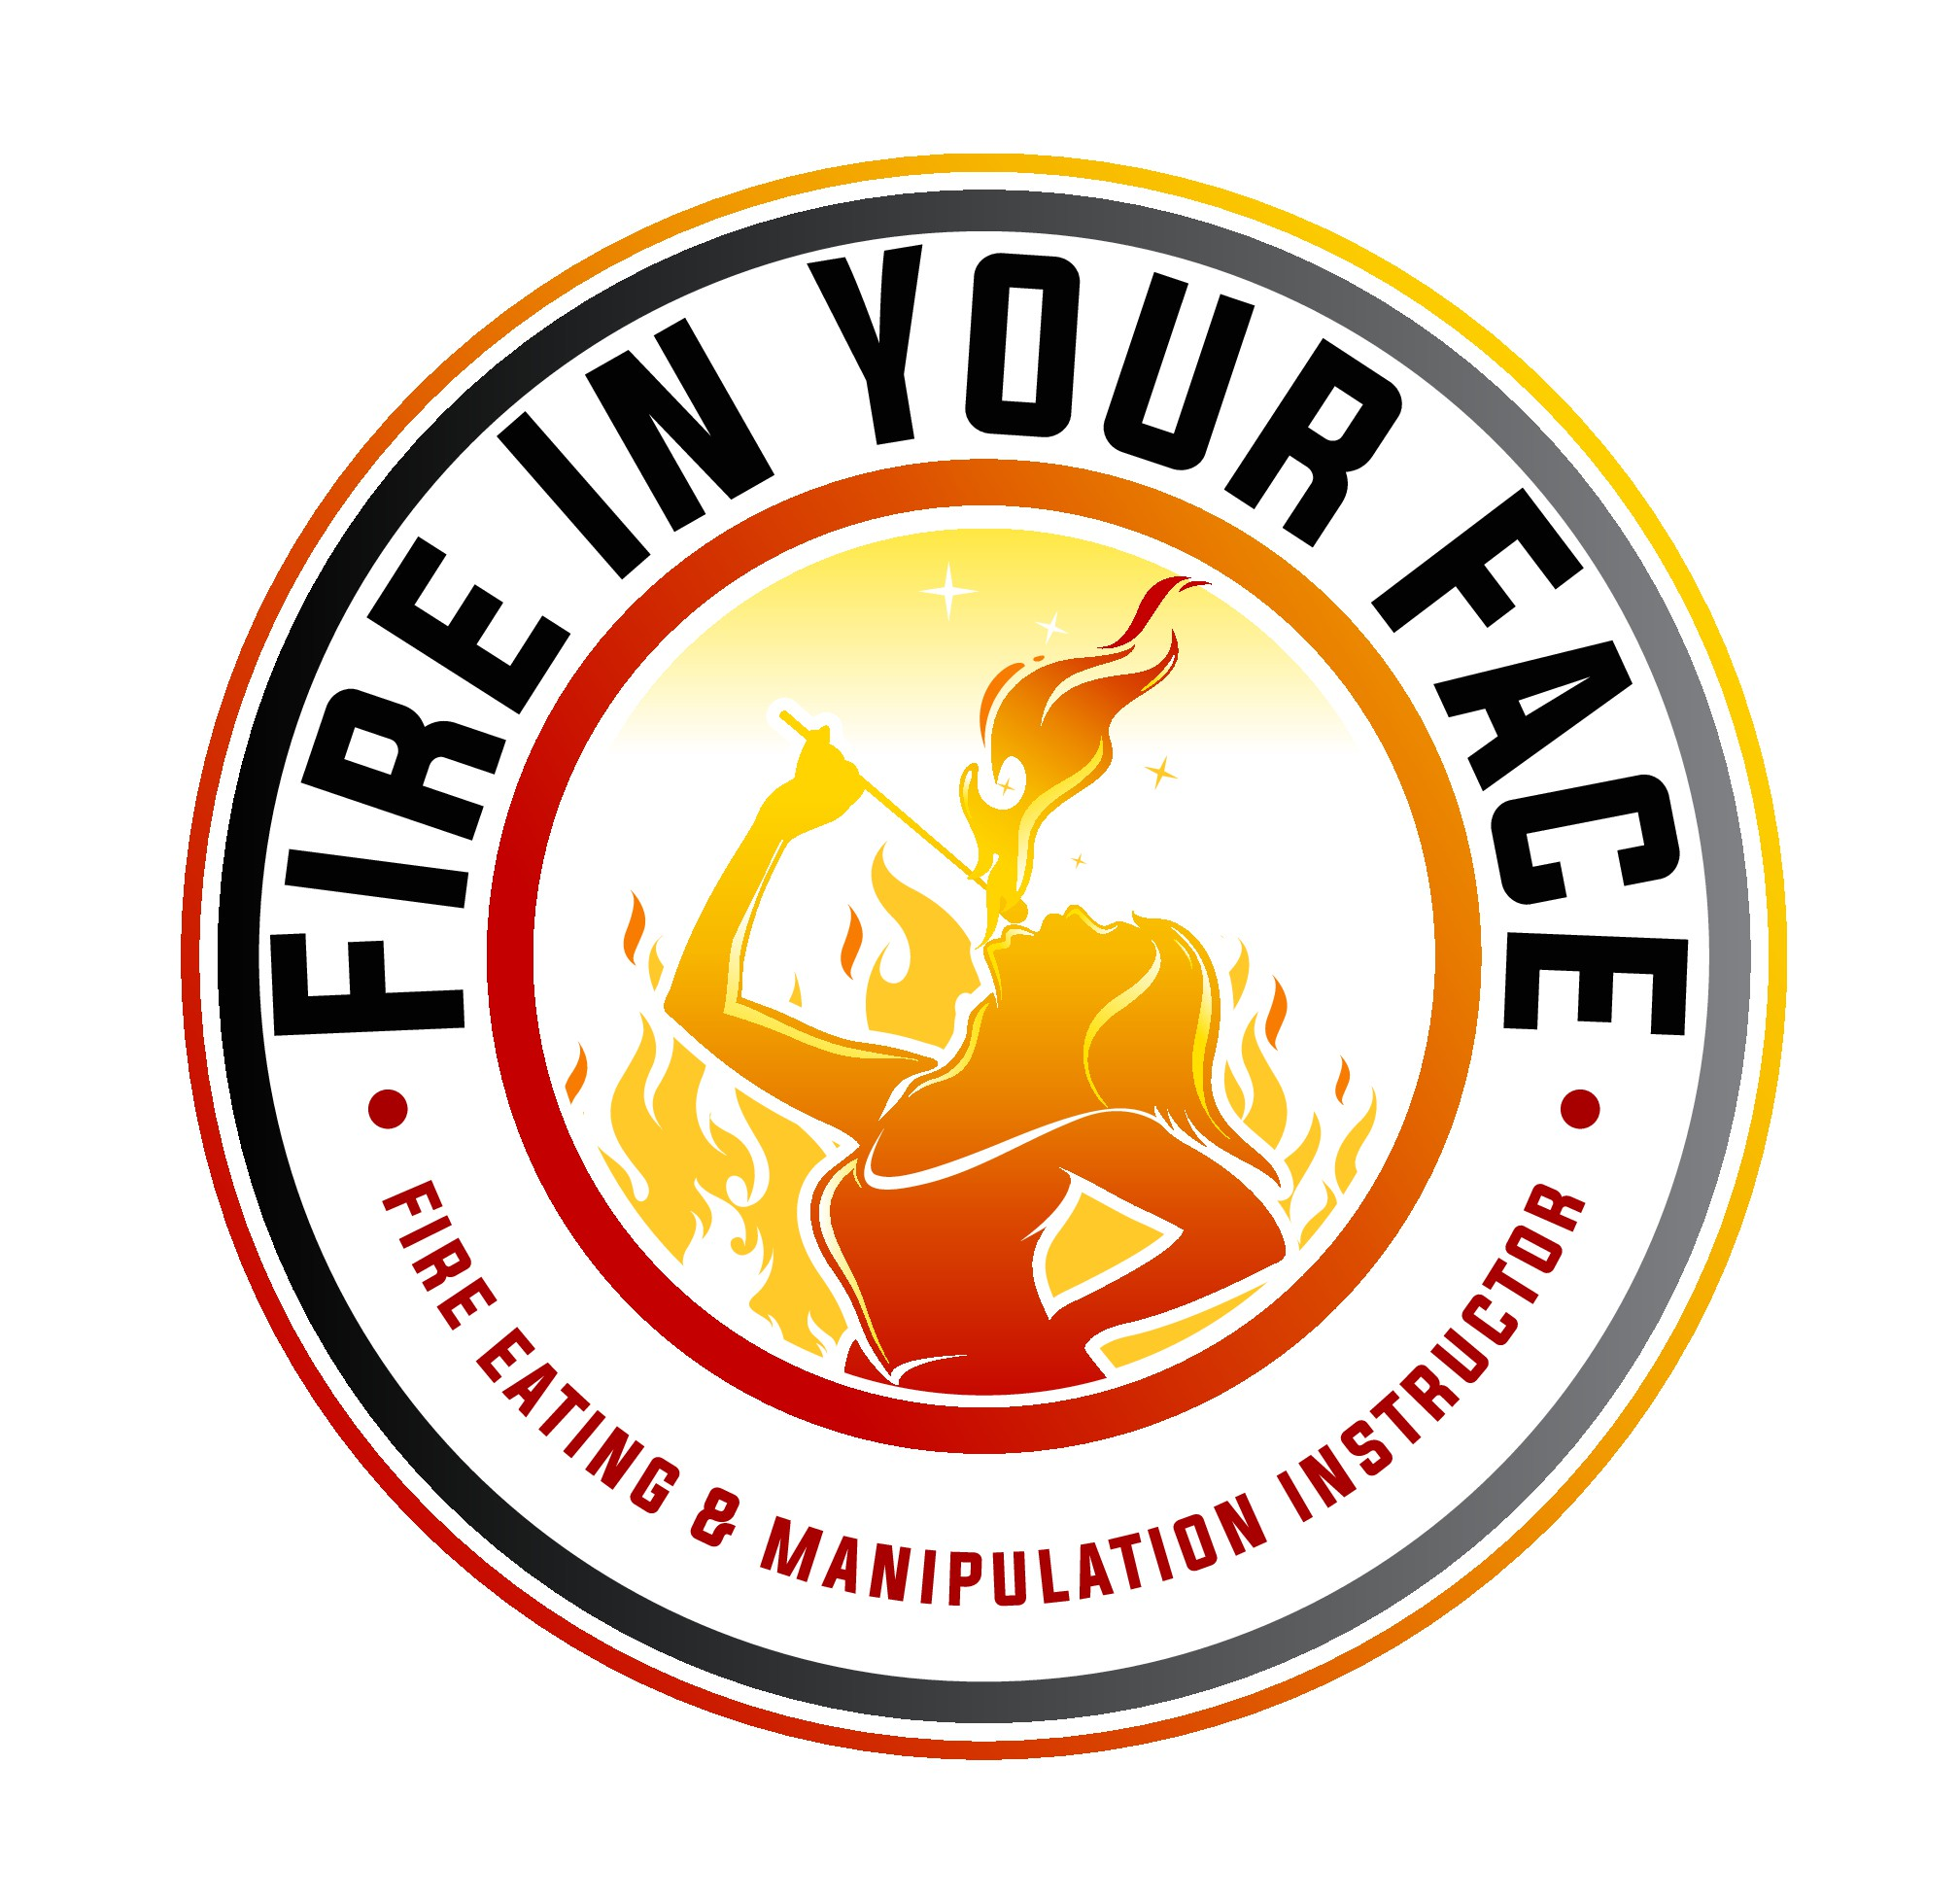 Fire Eating Instructor needs a logo design - Fun project from a communicative client! - GUARANTEED